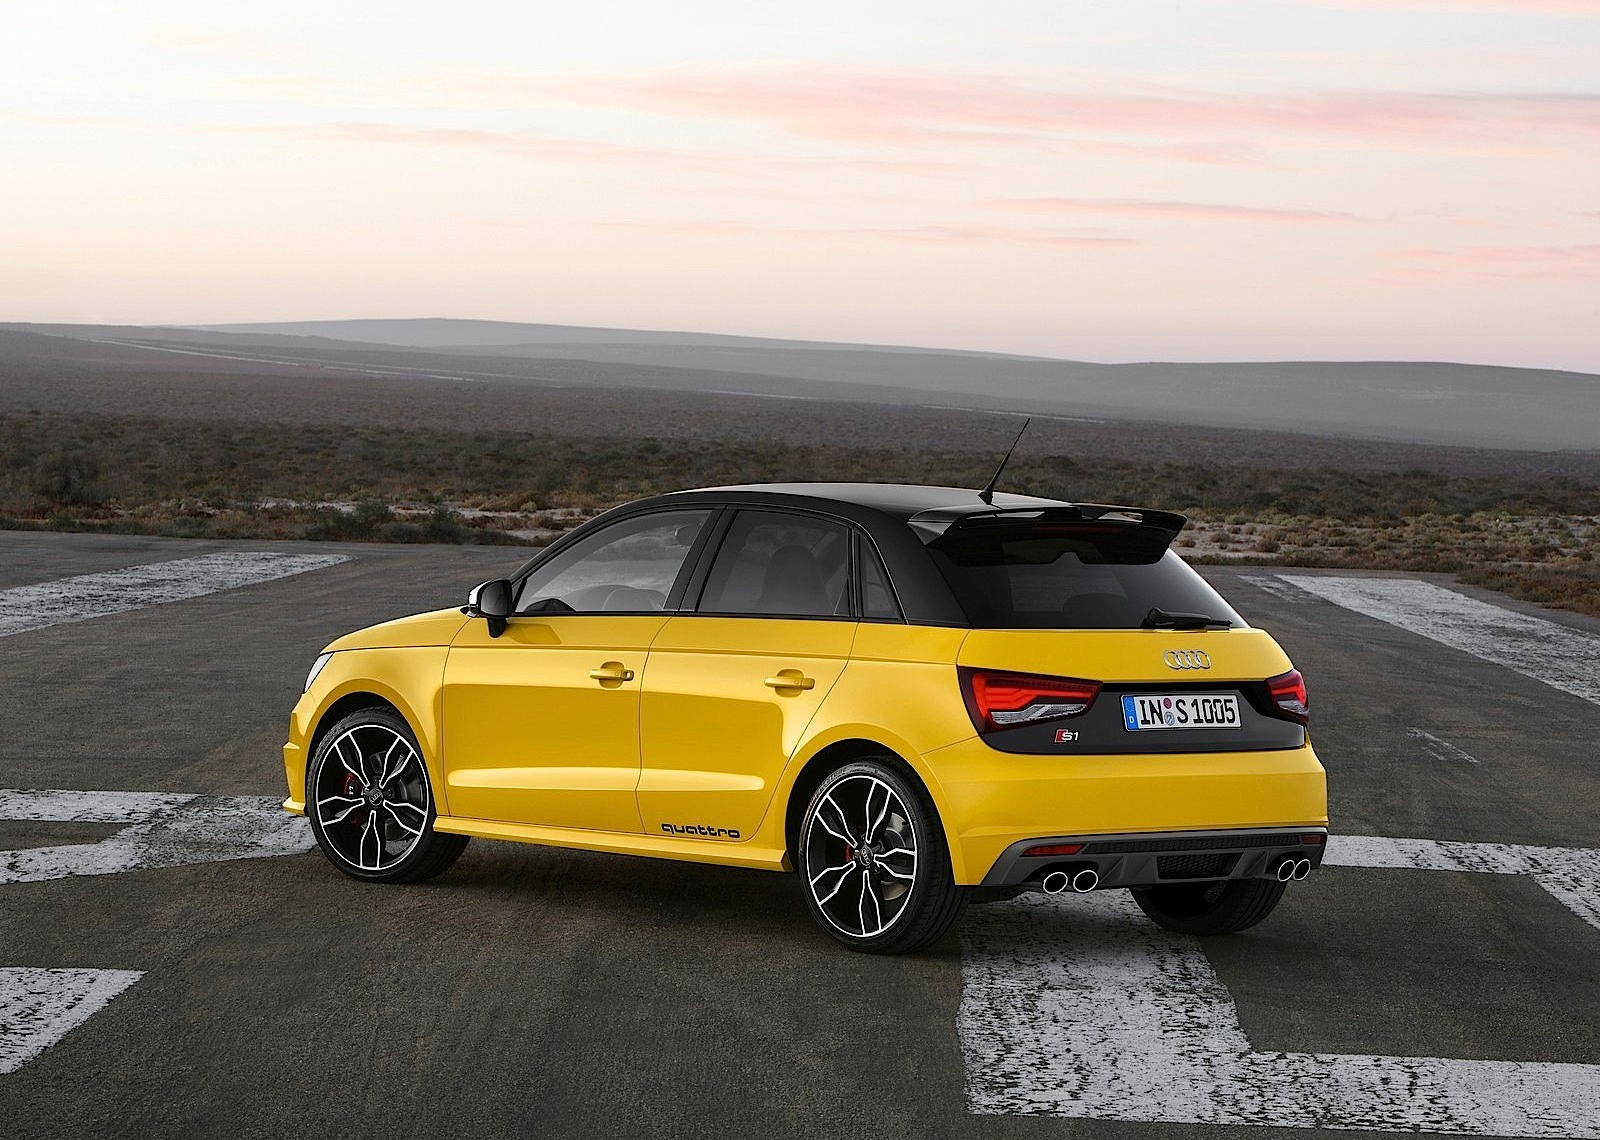 2015 audi s1 sportback vegas yellow front 1920x1080 14 of 115 car interior design. Black Bedroom Furniture Sets. Home Design Ideas